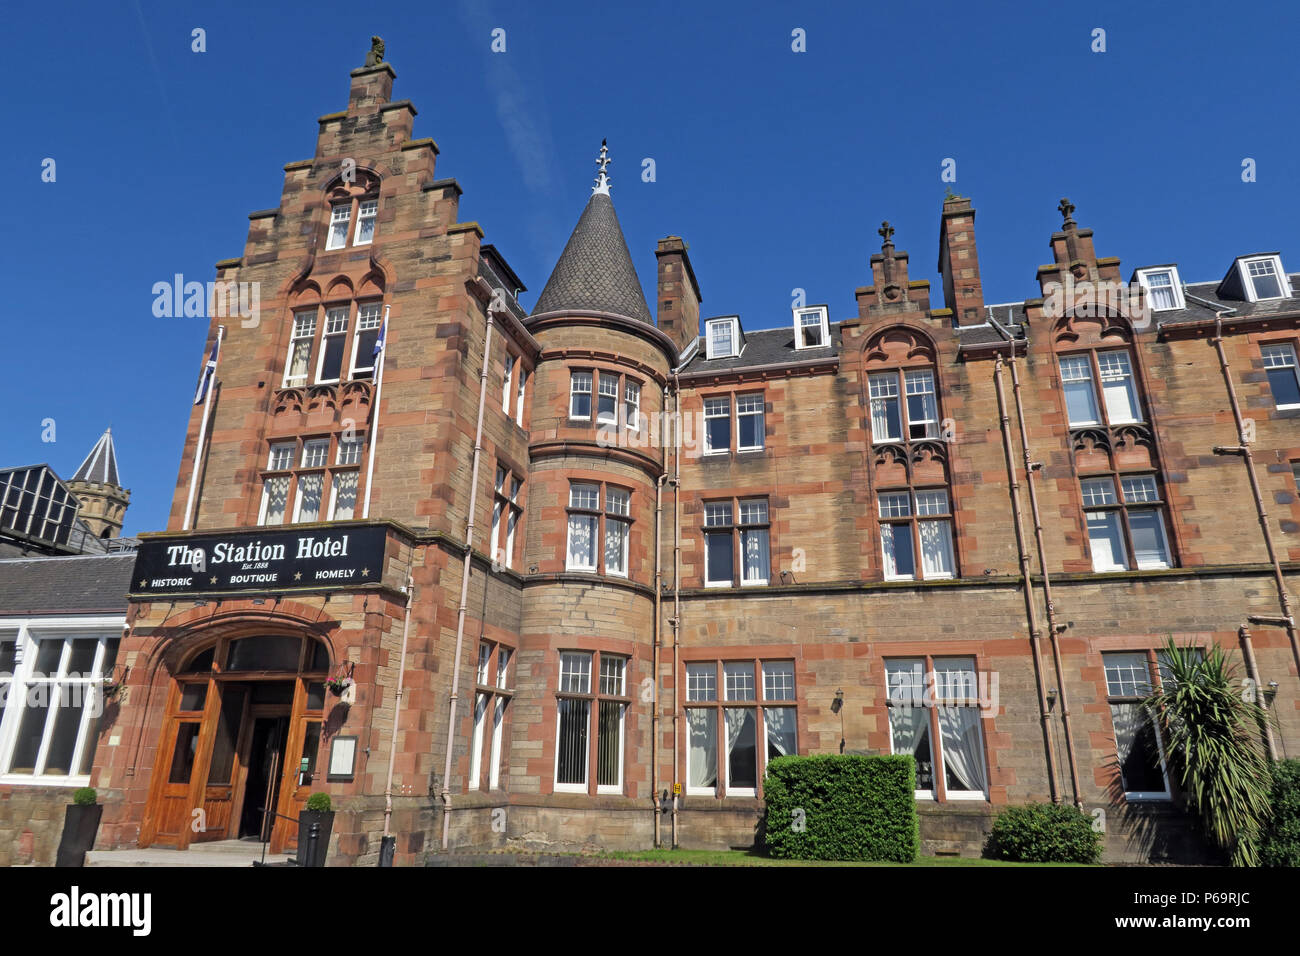 Station Hotel, 1 Leonard St, Perth, Scotland, UK,  PH2 8HE Stock Photo